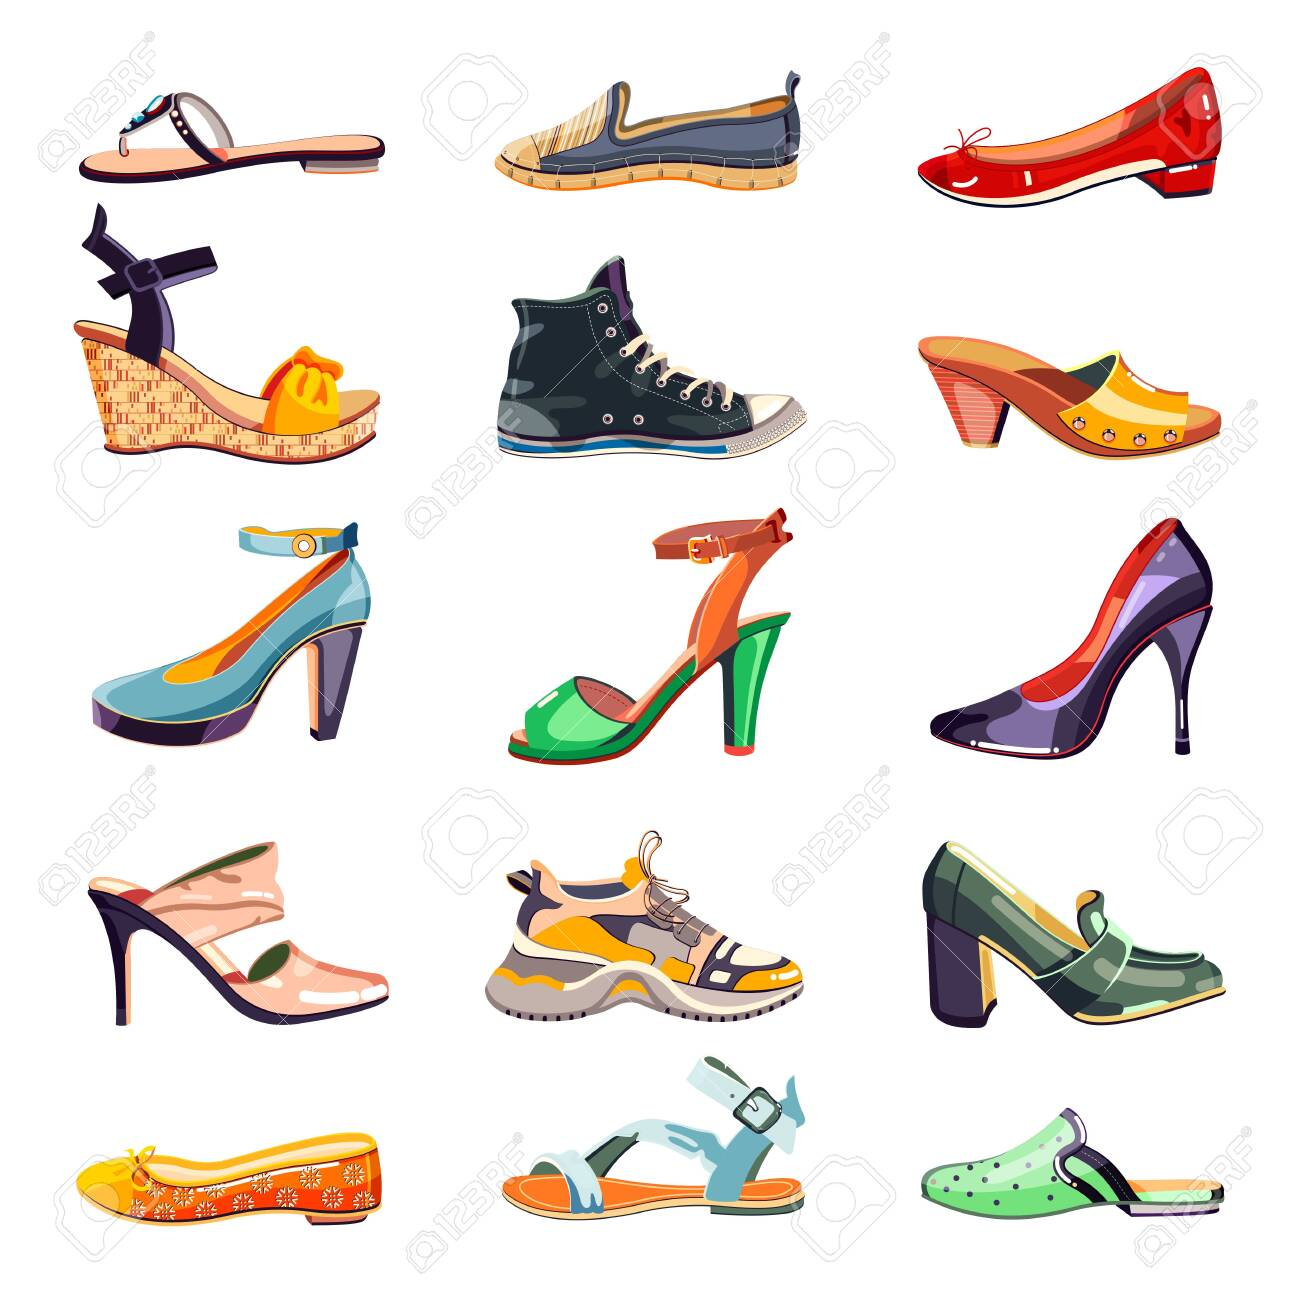 Female fashion elegant shoes icons and design elements set. Vector cartoon illustration. Summer, autumn and spring trendy footwear collection, isolated on white background. - 131429868